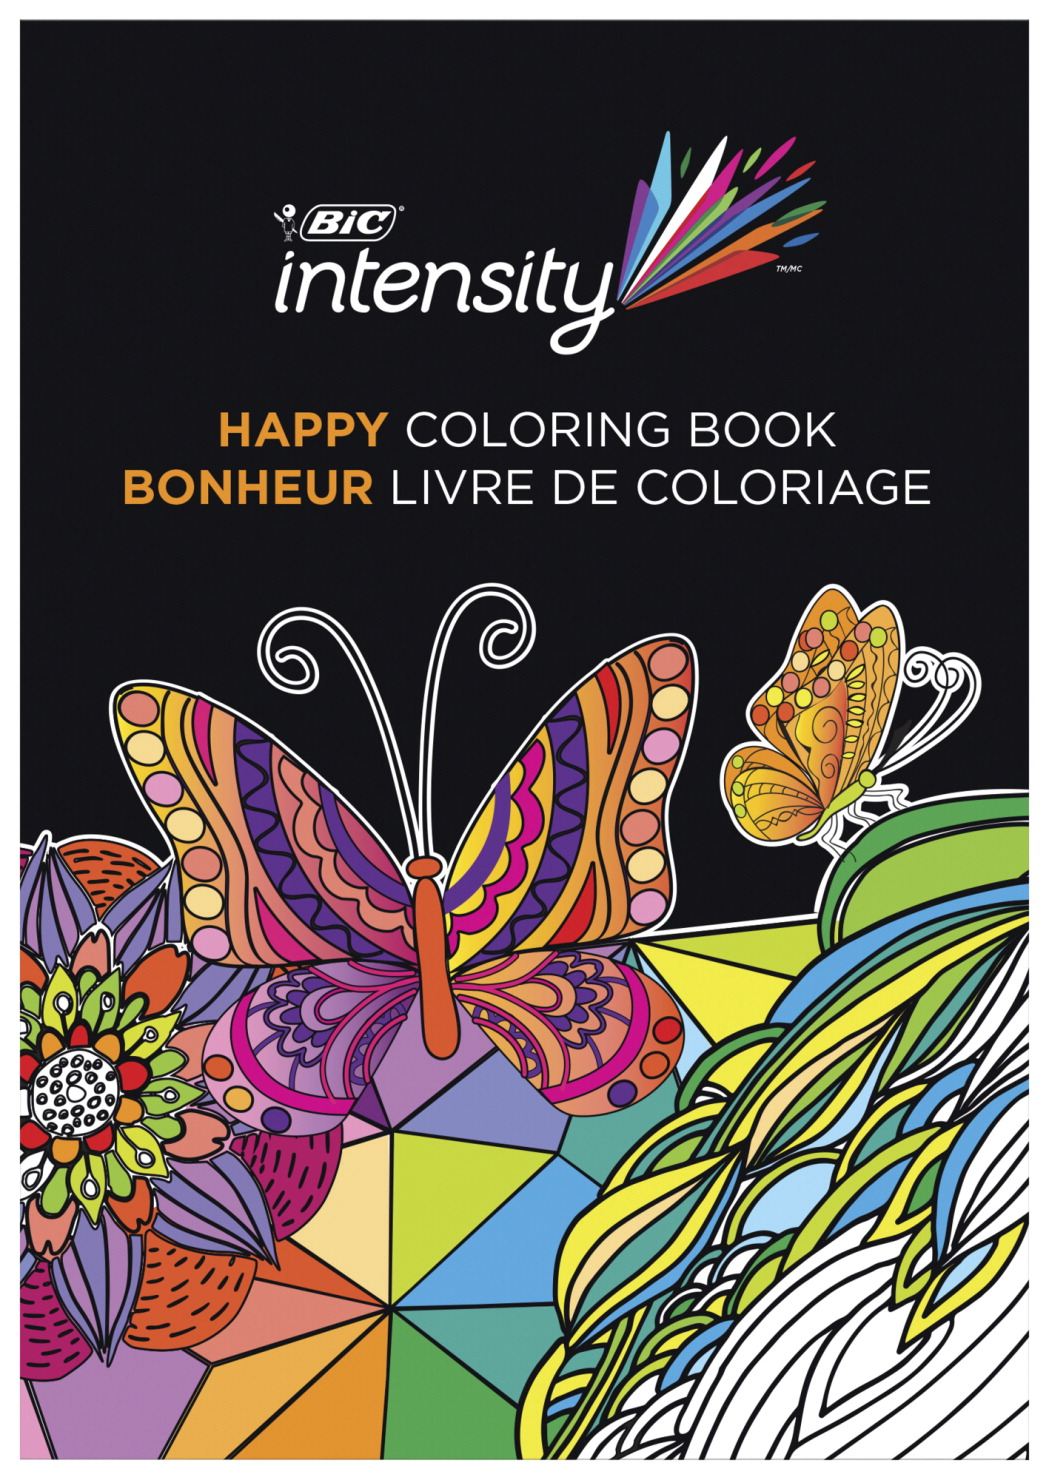 BIC Adult Coloring Books, Calm Designs, Pack of 6